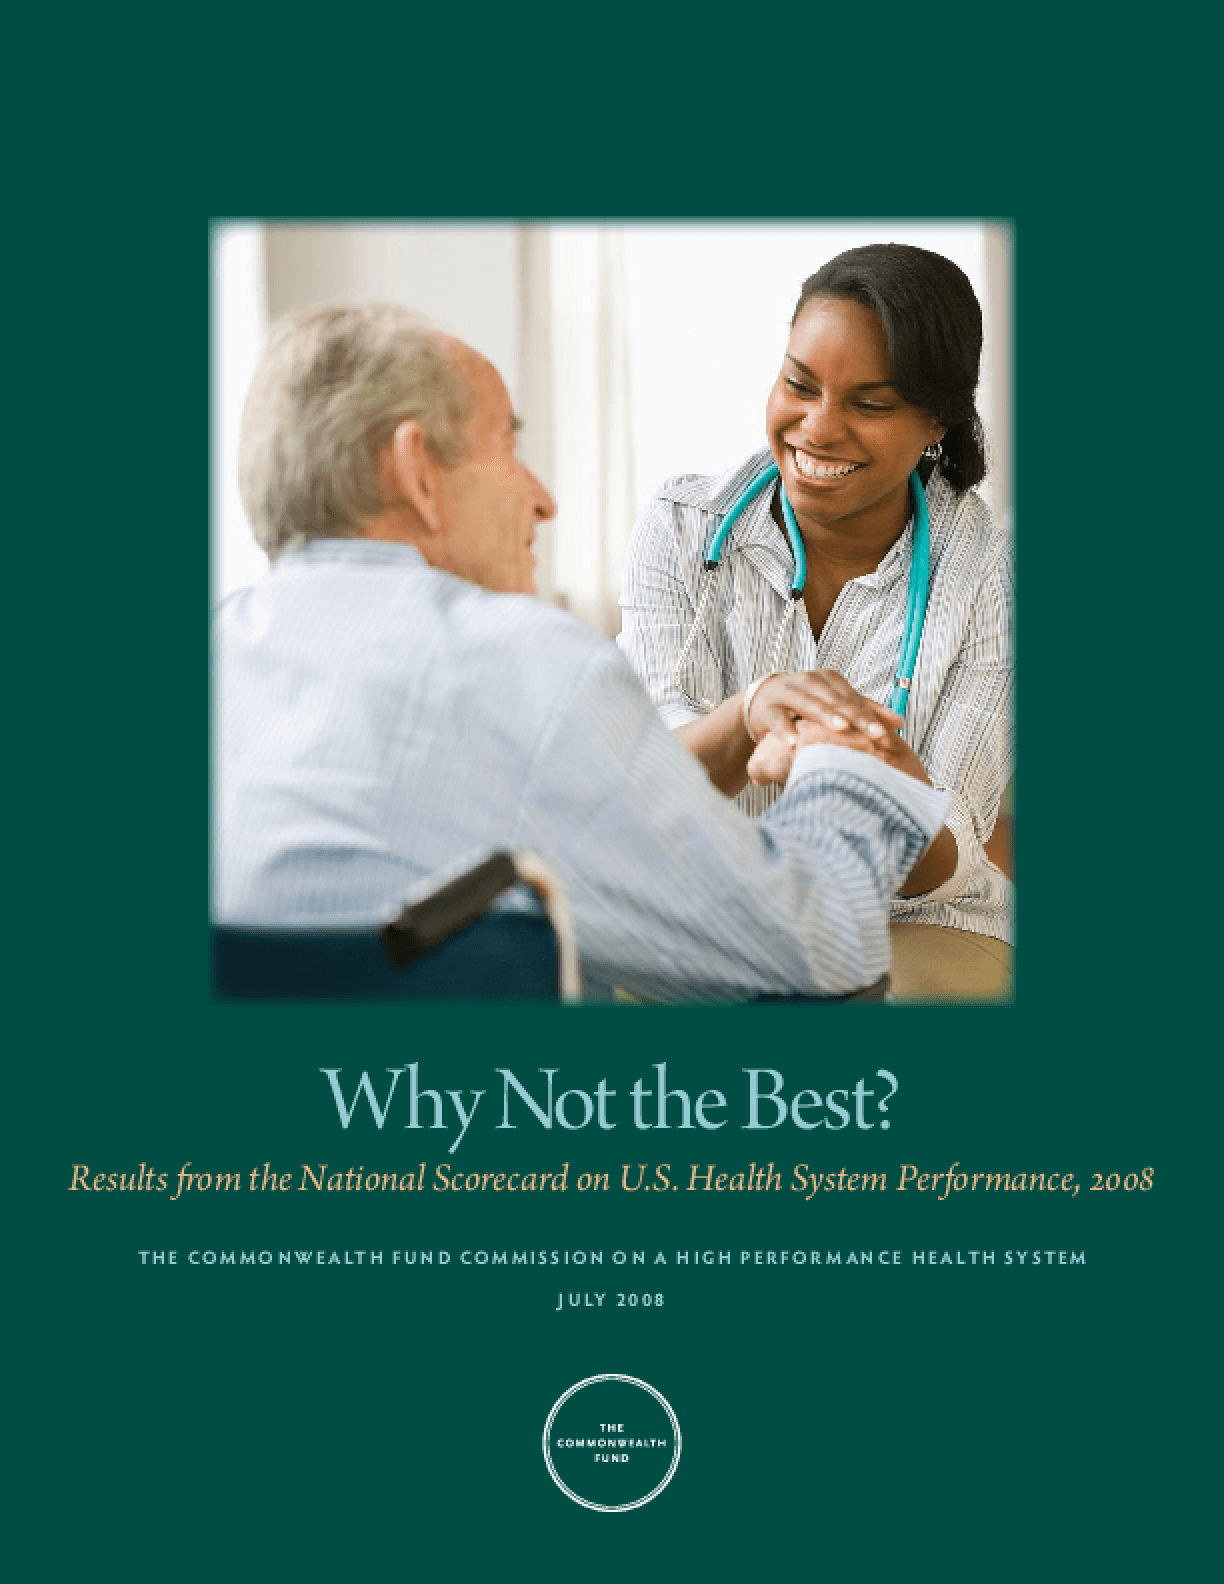 Why Not the Best? Results From the National Scorecard on U.S. Health System Performance, 2008